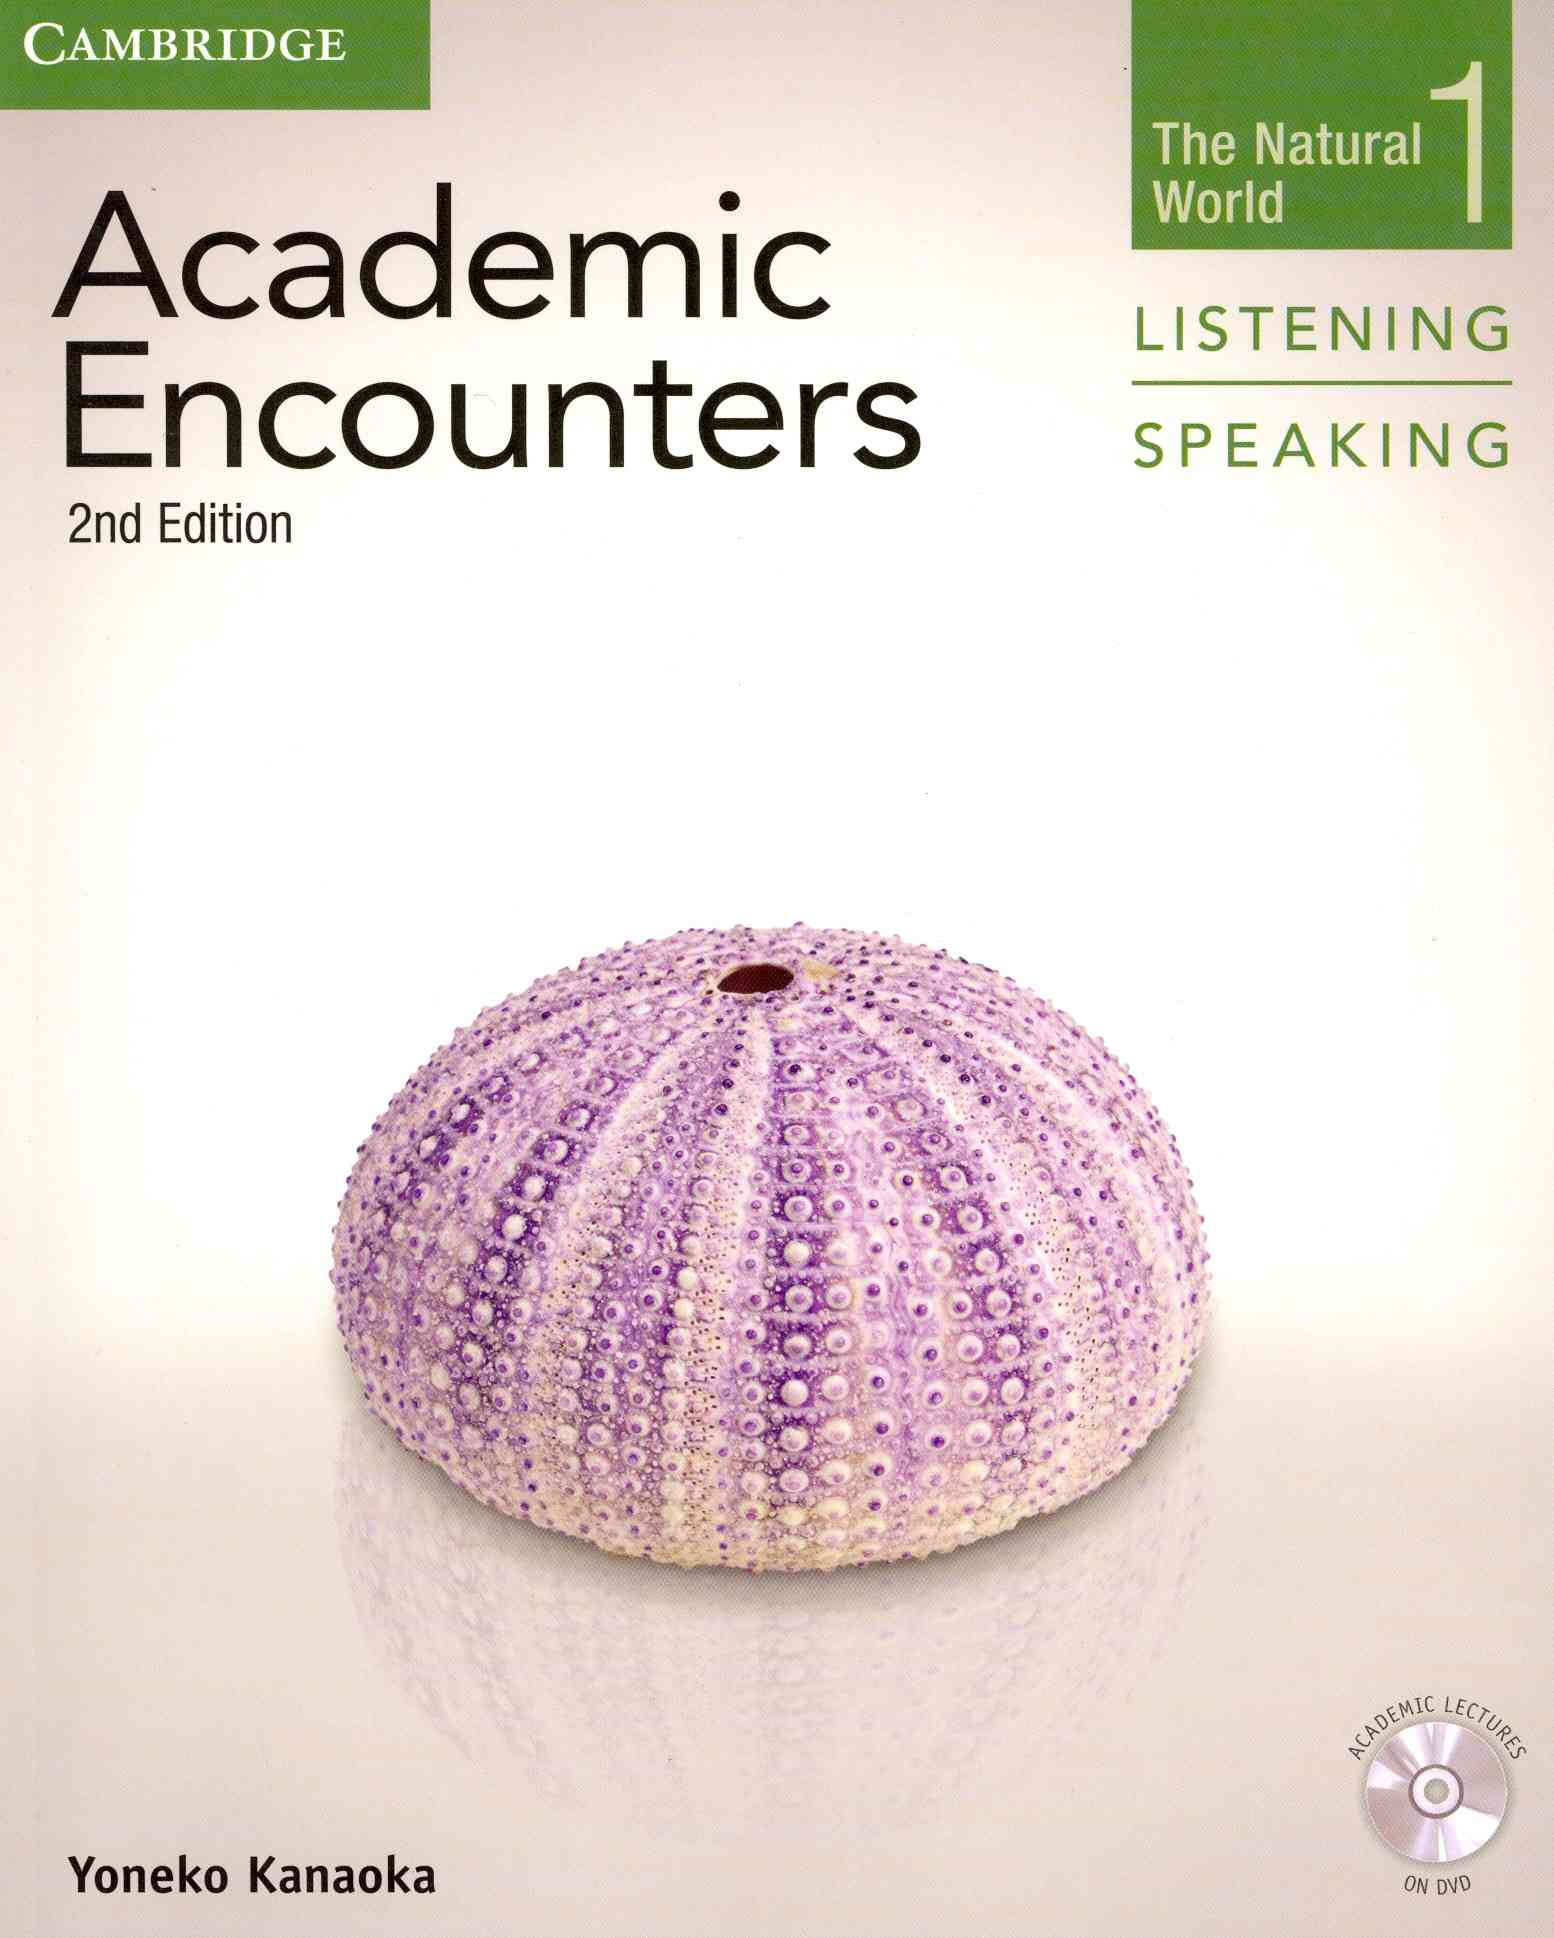 Academic Encounters Level 1 Student's Book Listening and Speaking By Kanaoka, Yoneko/ Seal, Bernard (EDT)